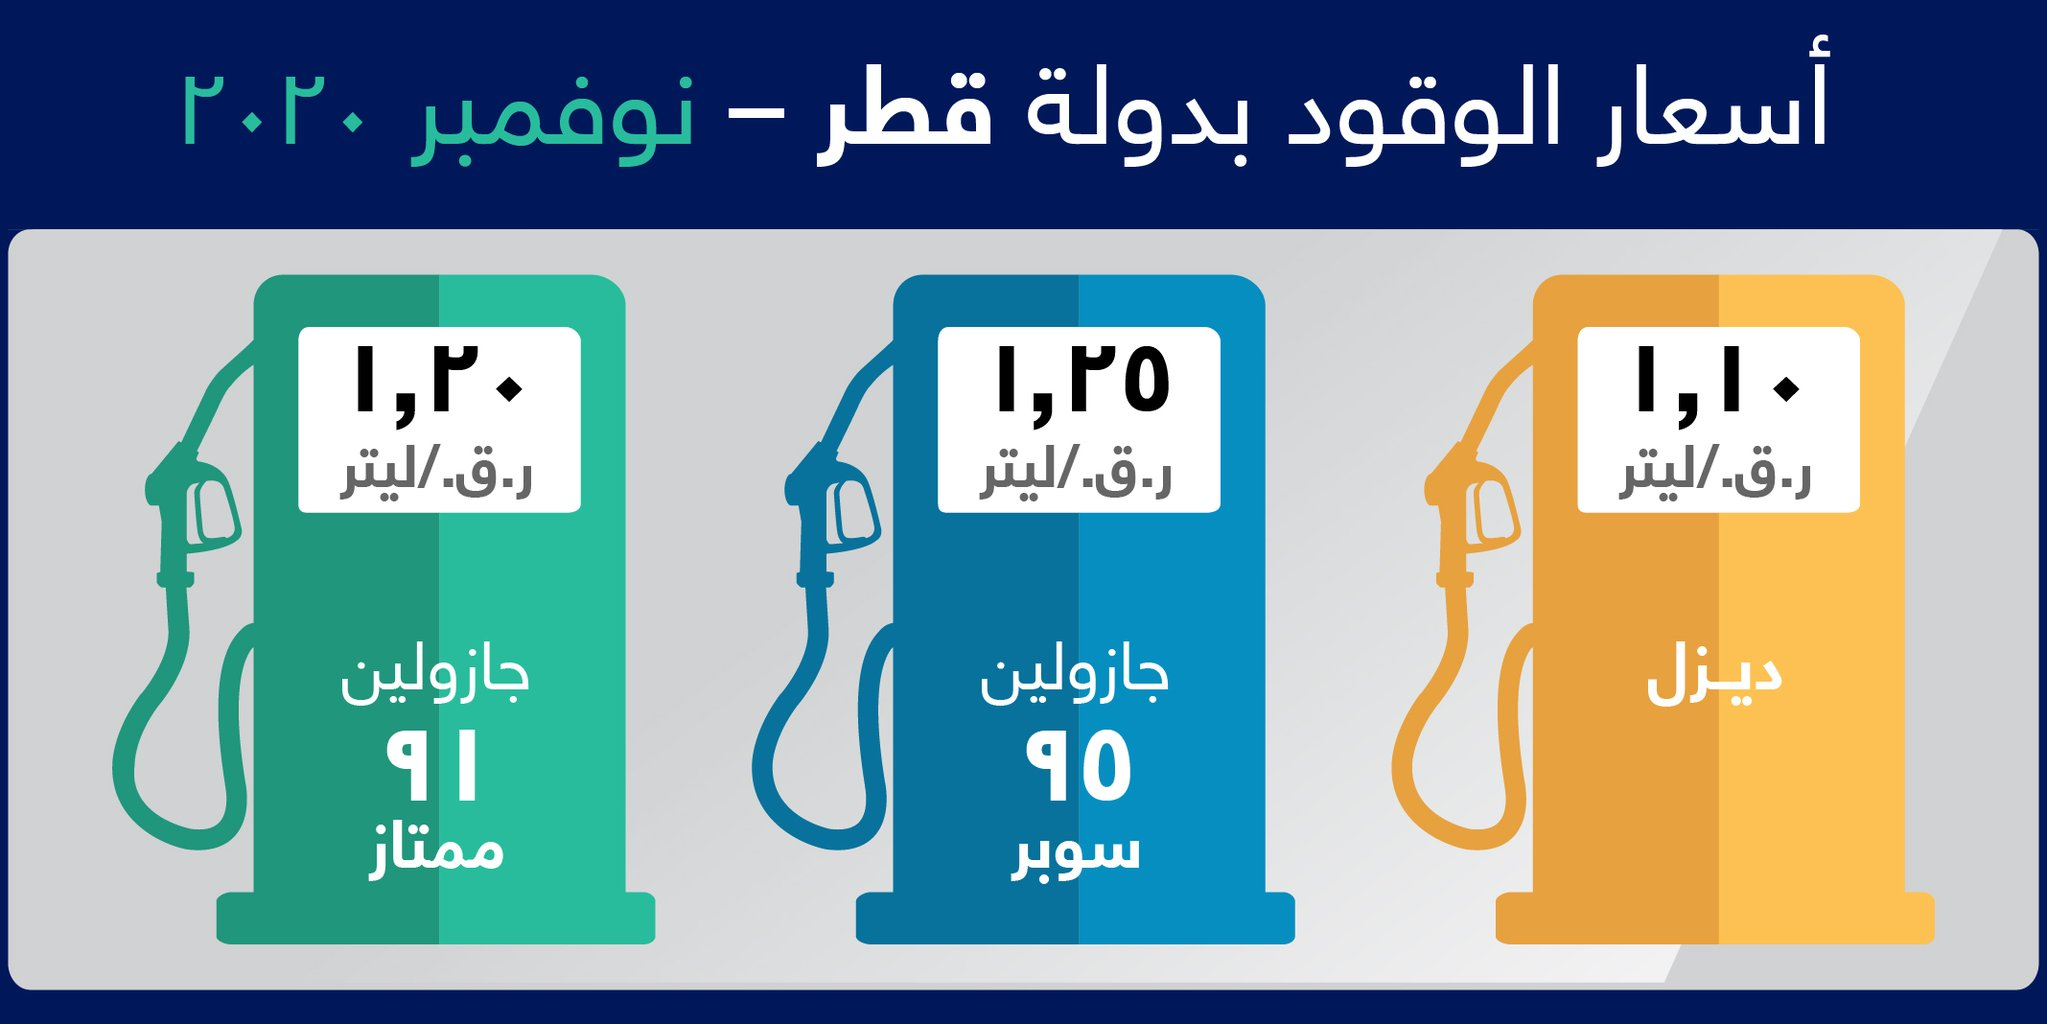 Qatar Petroleum reduces fuel prices in November